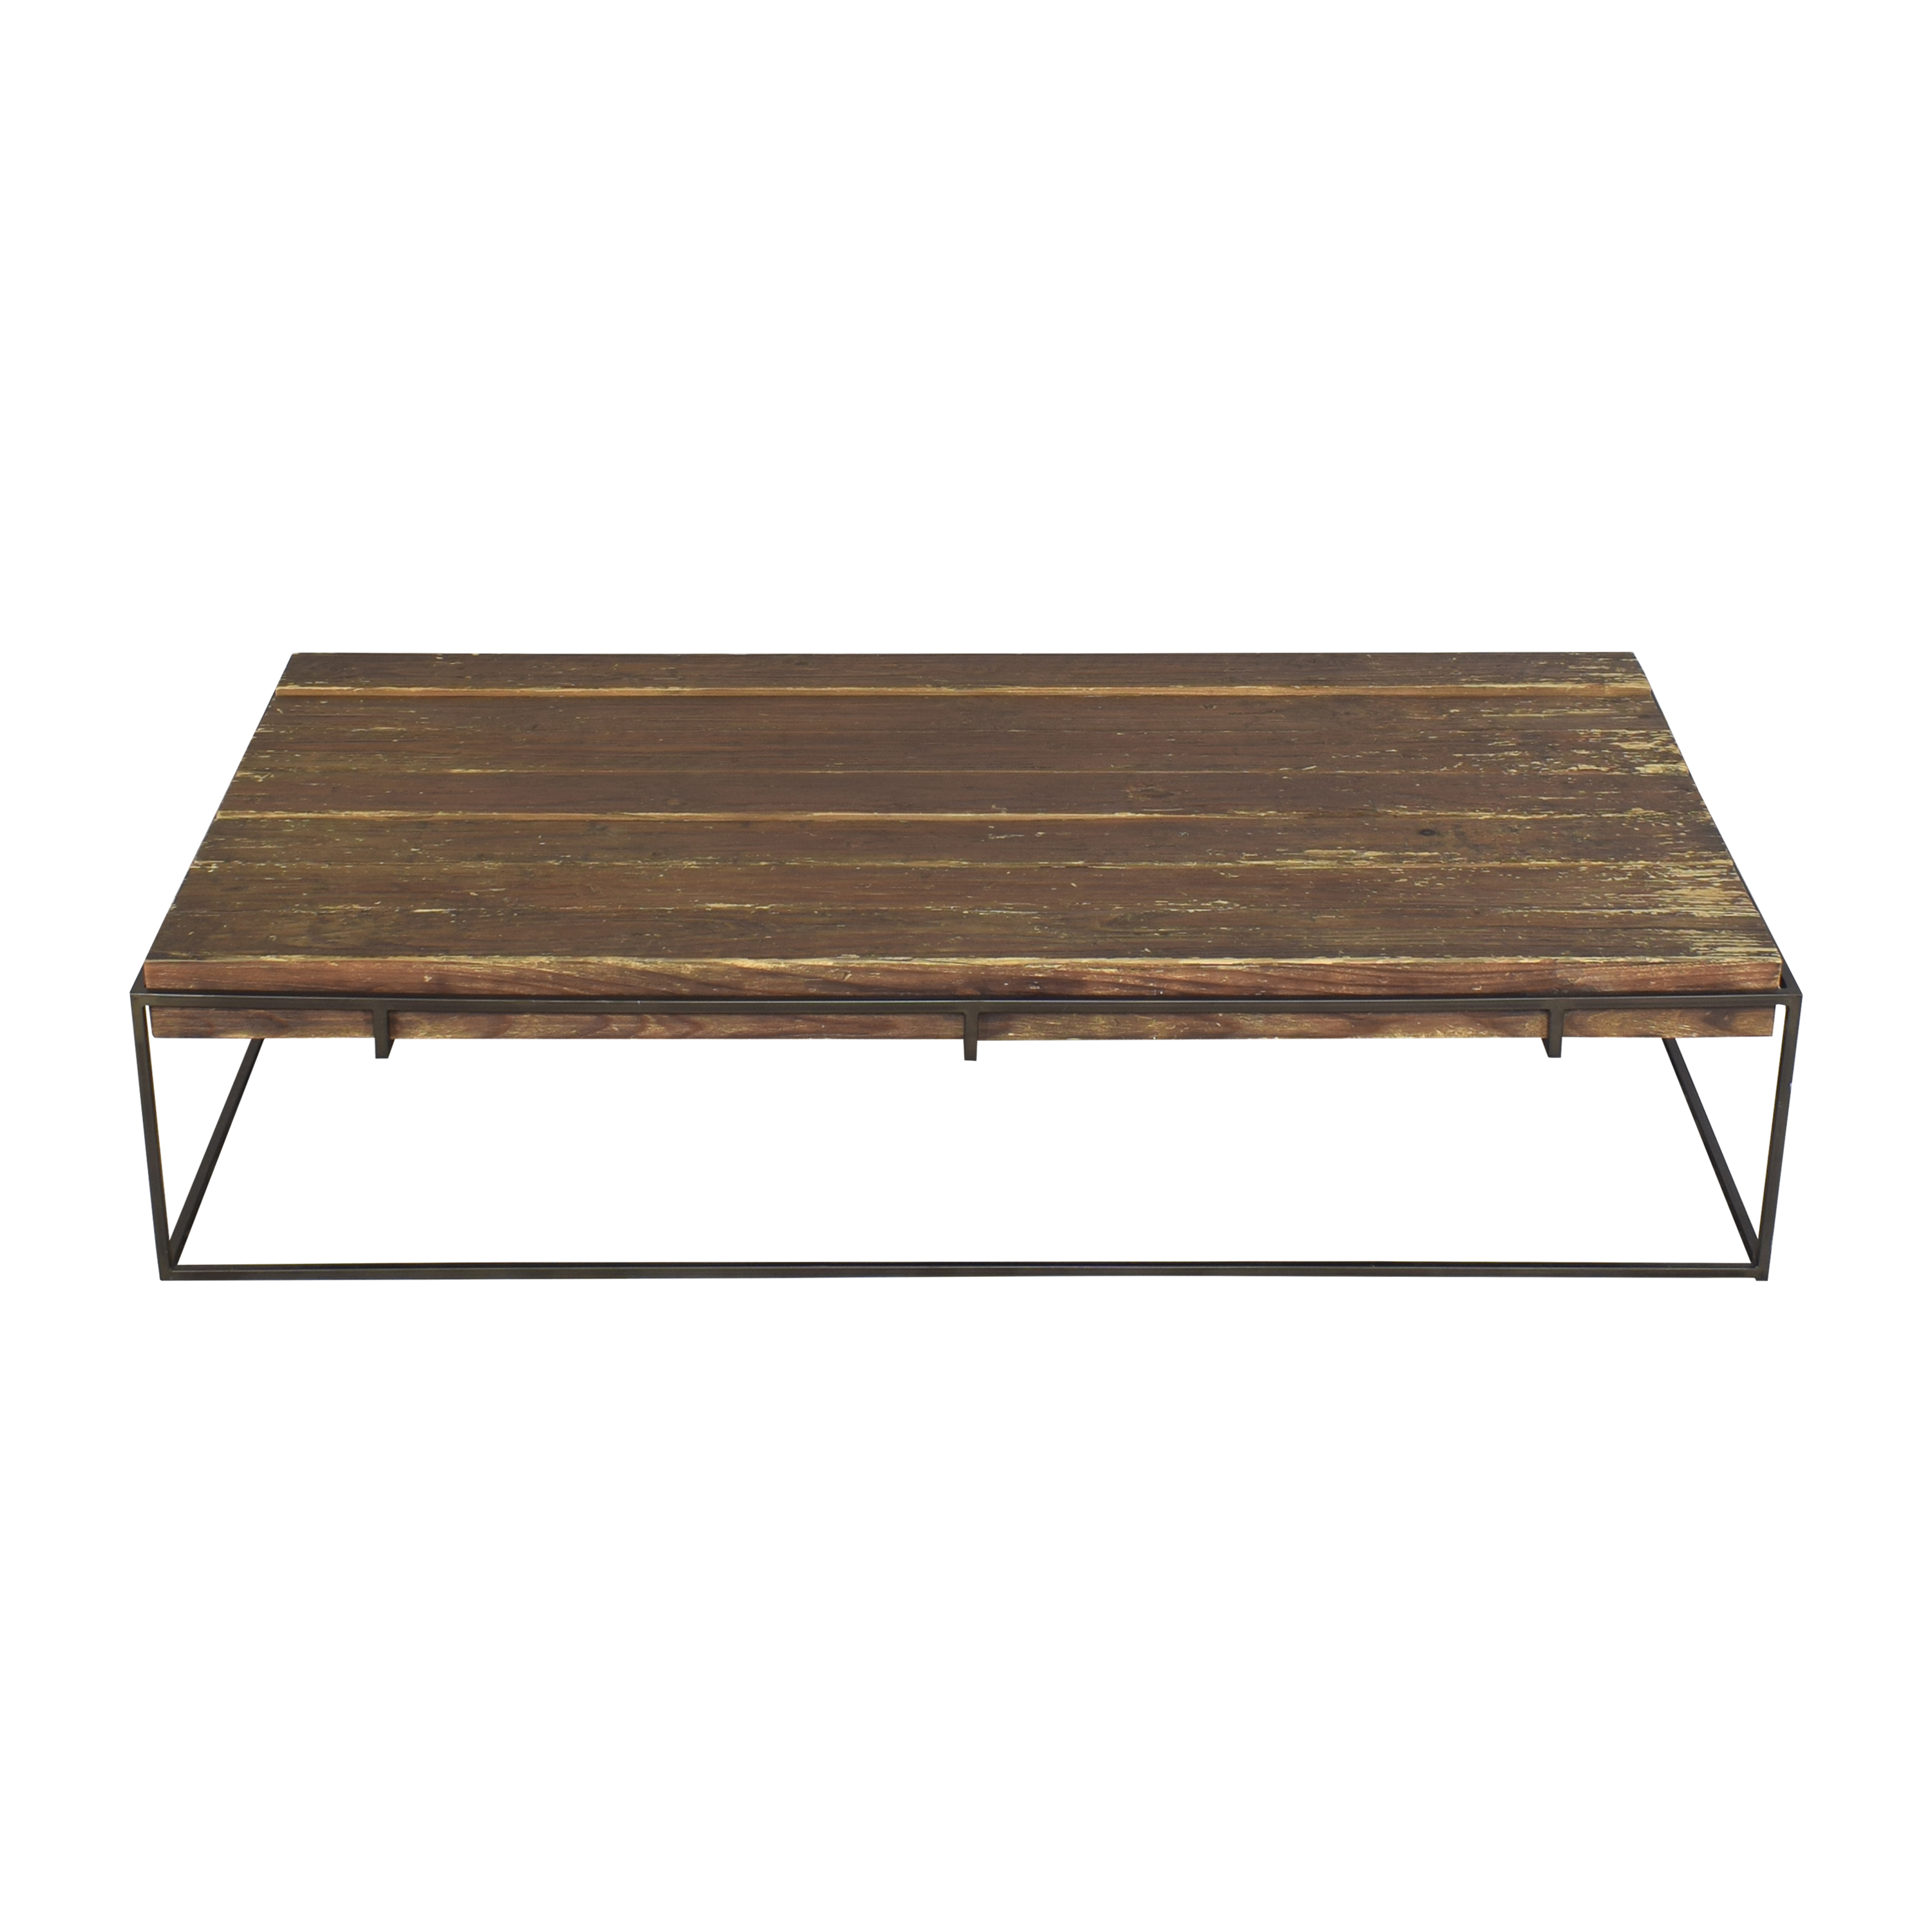 West Elm Hudson Reclaimed Coffee Table / Coffee Tables